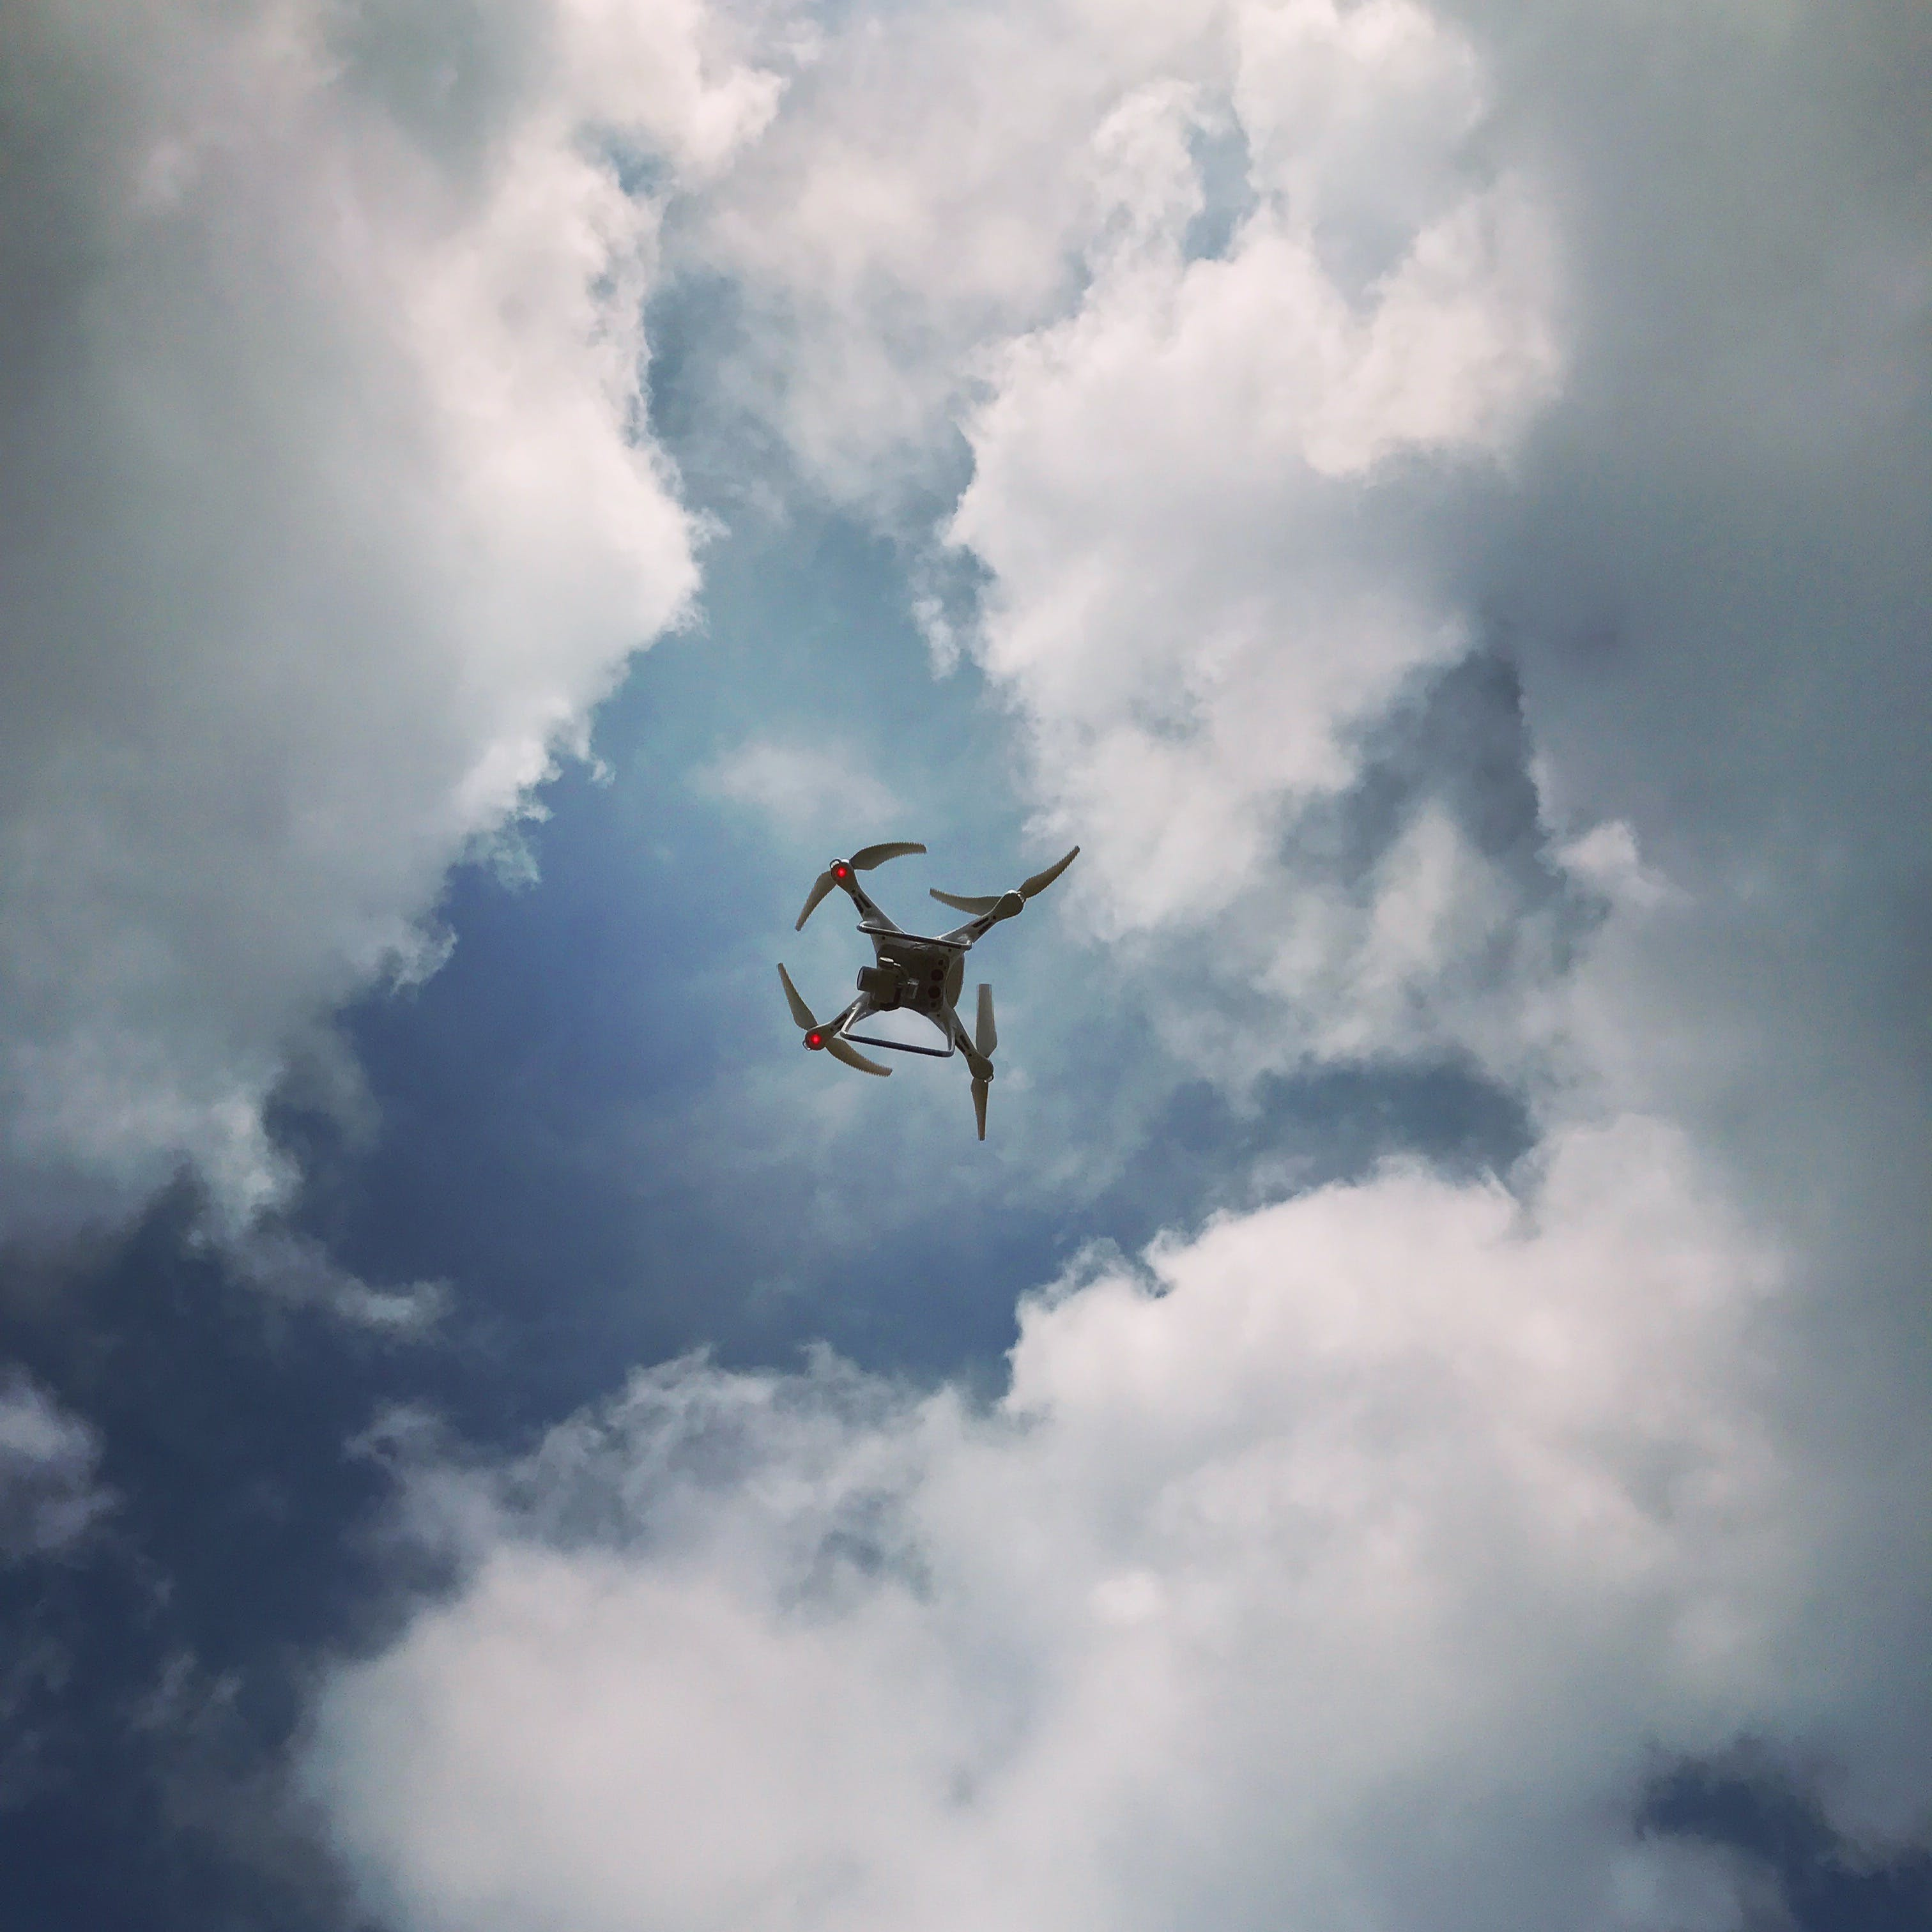 Photo of Drone Under Cloudy Sky